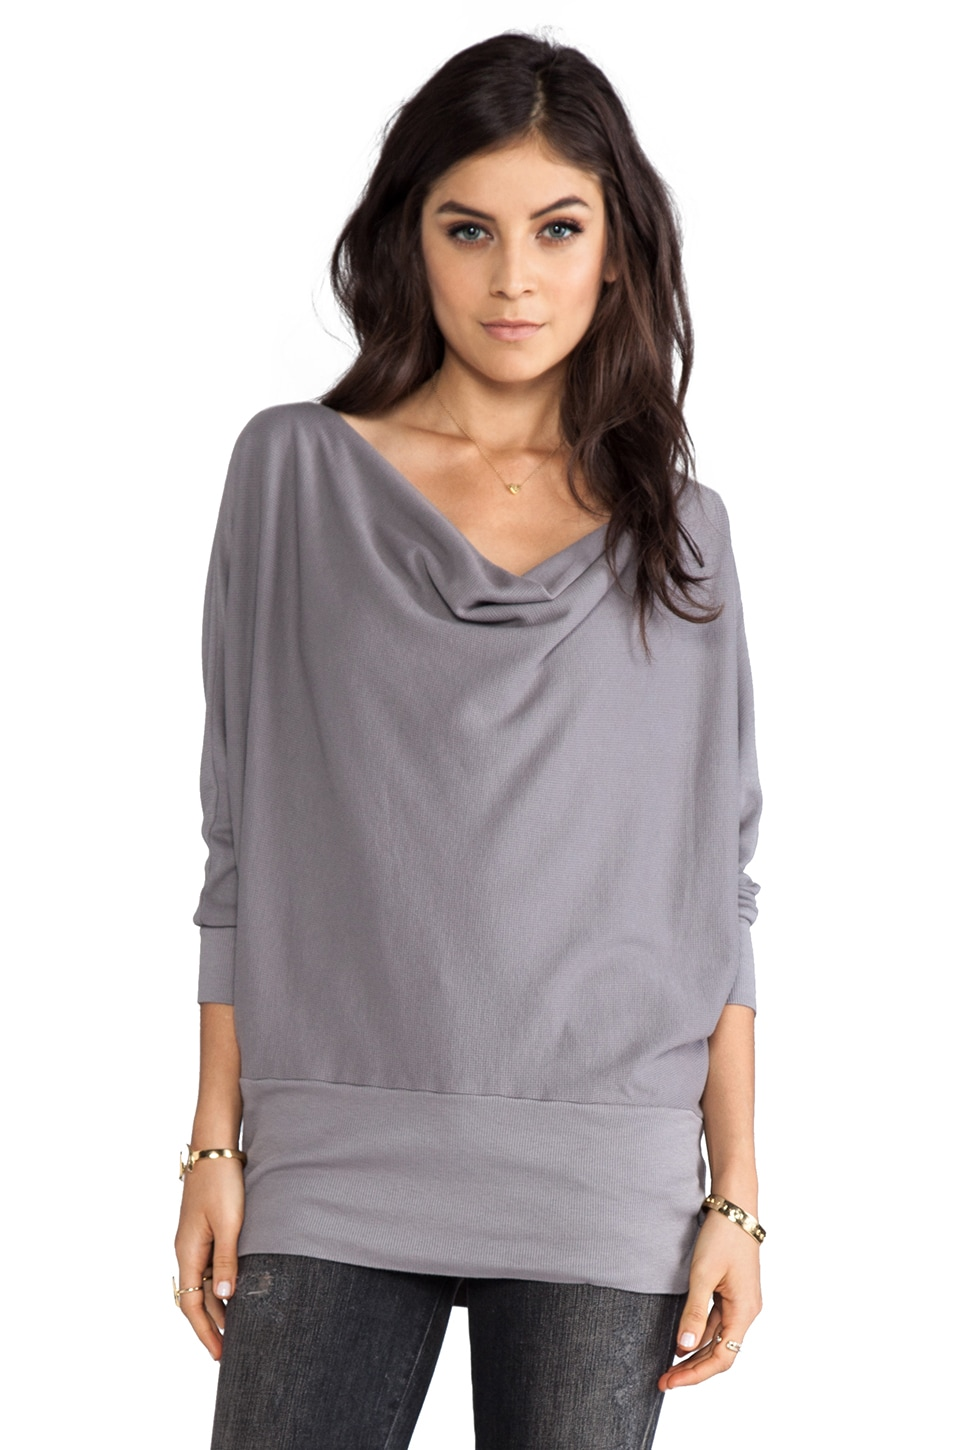 LA Made Aiden Dolman Long Sleeve Top in Chateau Grey